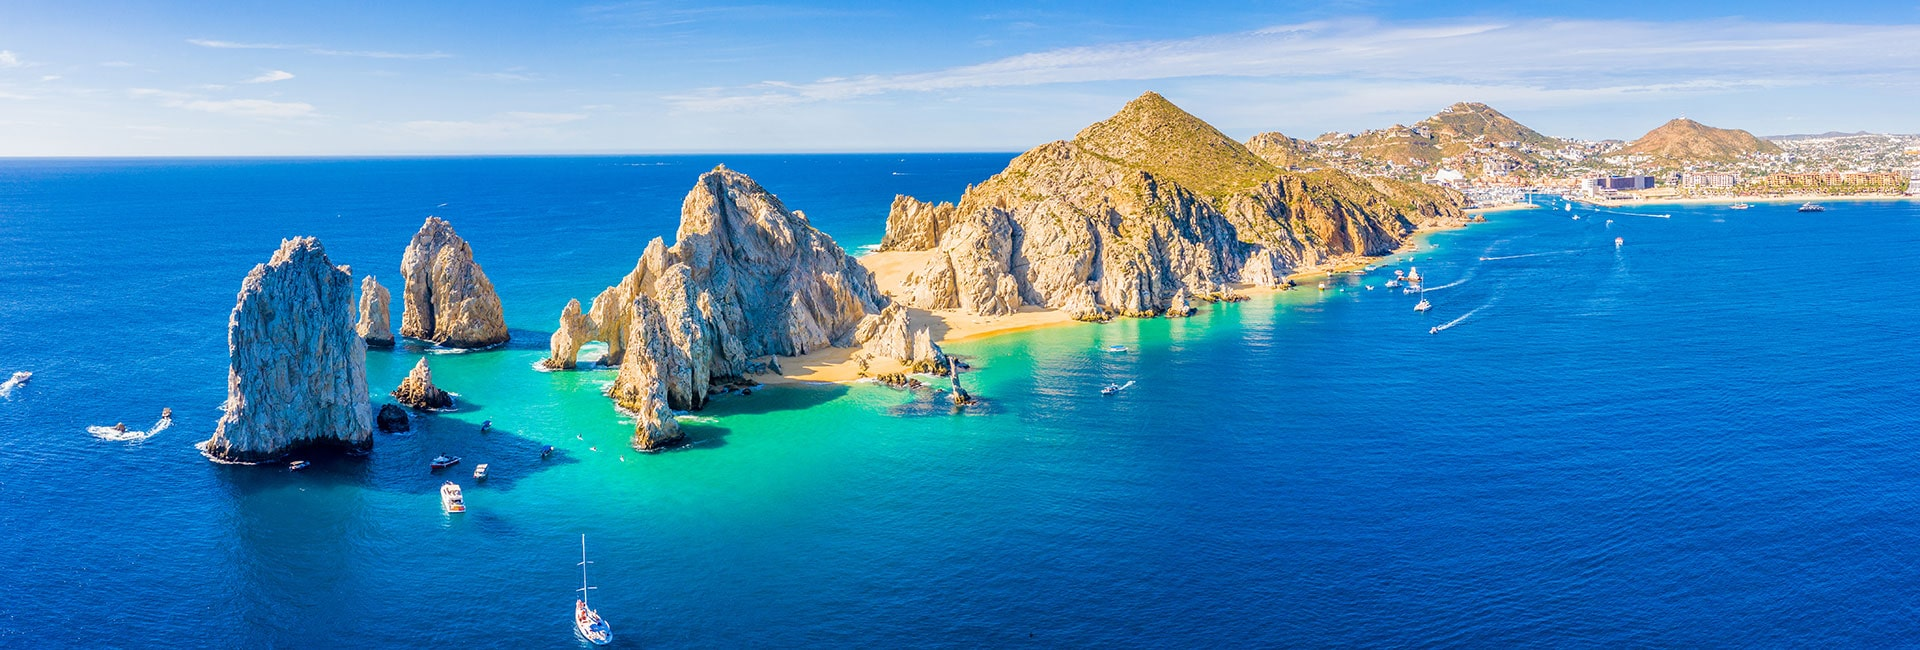 Coronavirus 2021 travel restrictions updates in cabo san lucas mexico